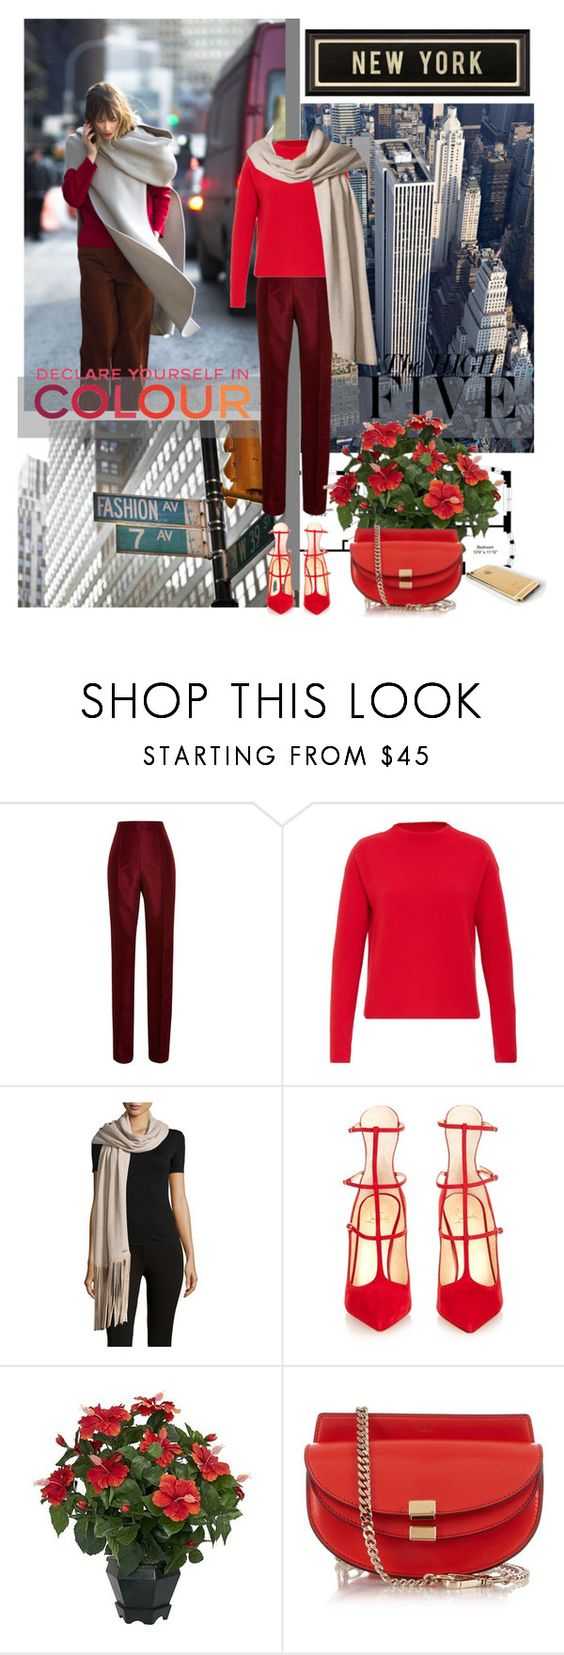 """""""Streets Of Color"""" by jacque-reid ❤ liked on Polyvore featuring Lacava, Rosie Assoulin, Hallhuber, Armani Collezioni, Christian Louboutin, Nearly Natural, Chloé, Spicher and Company and Chanel"""